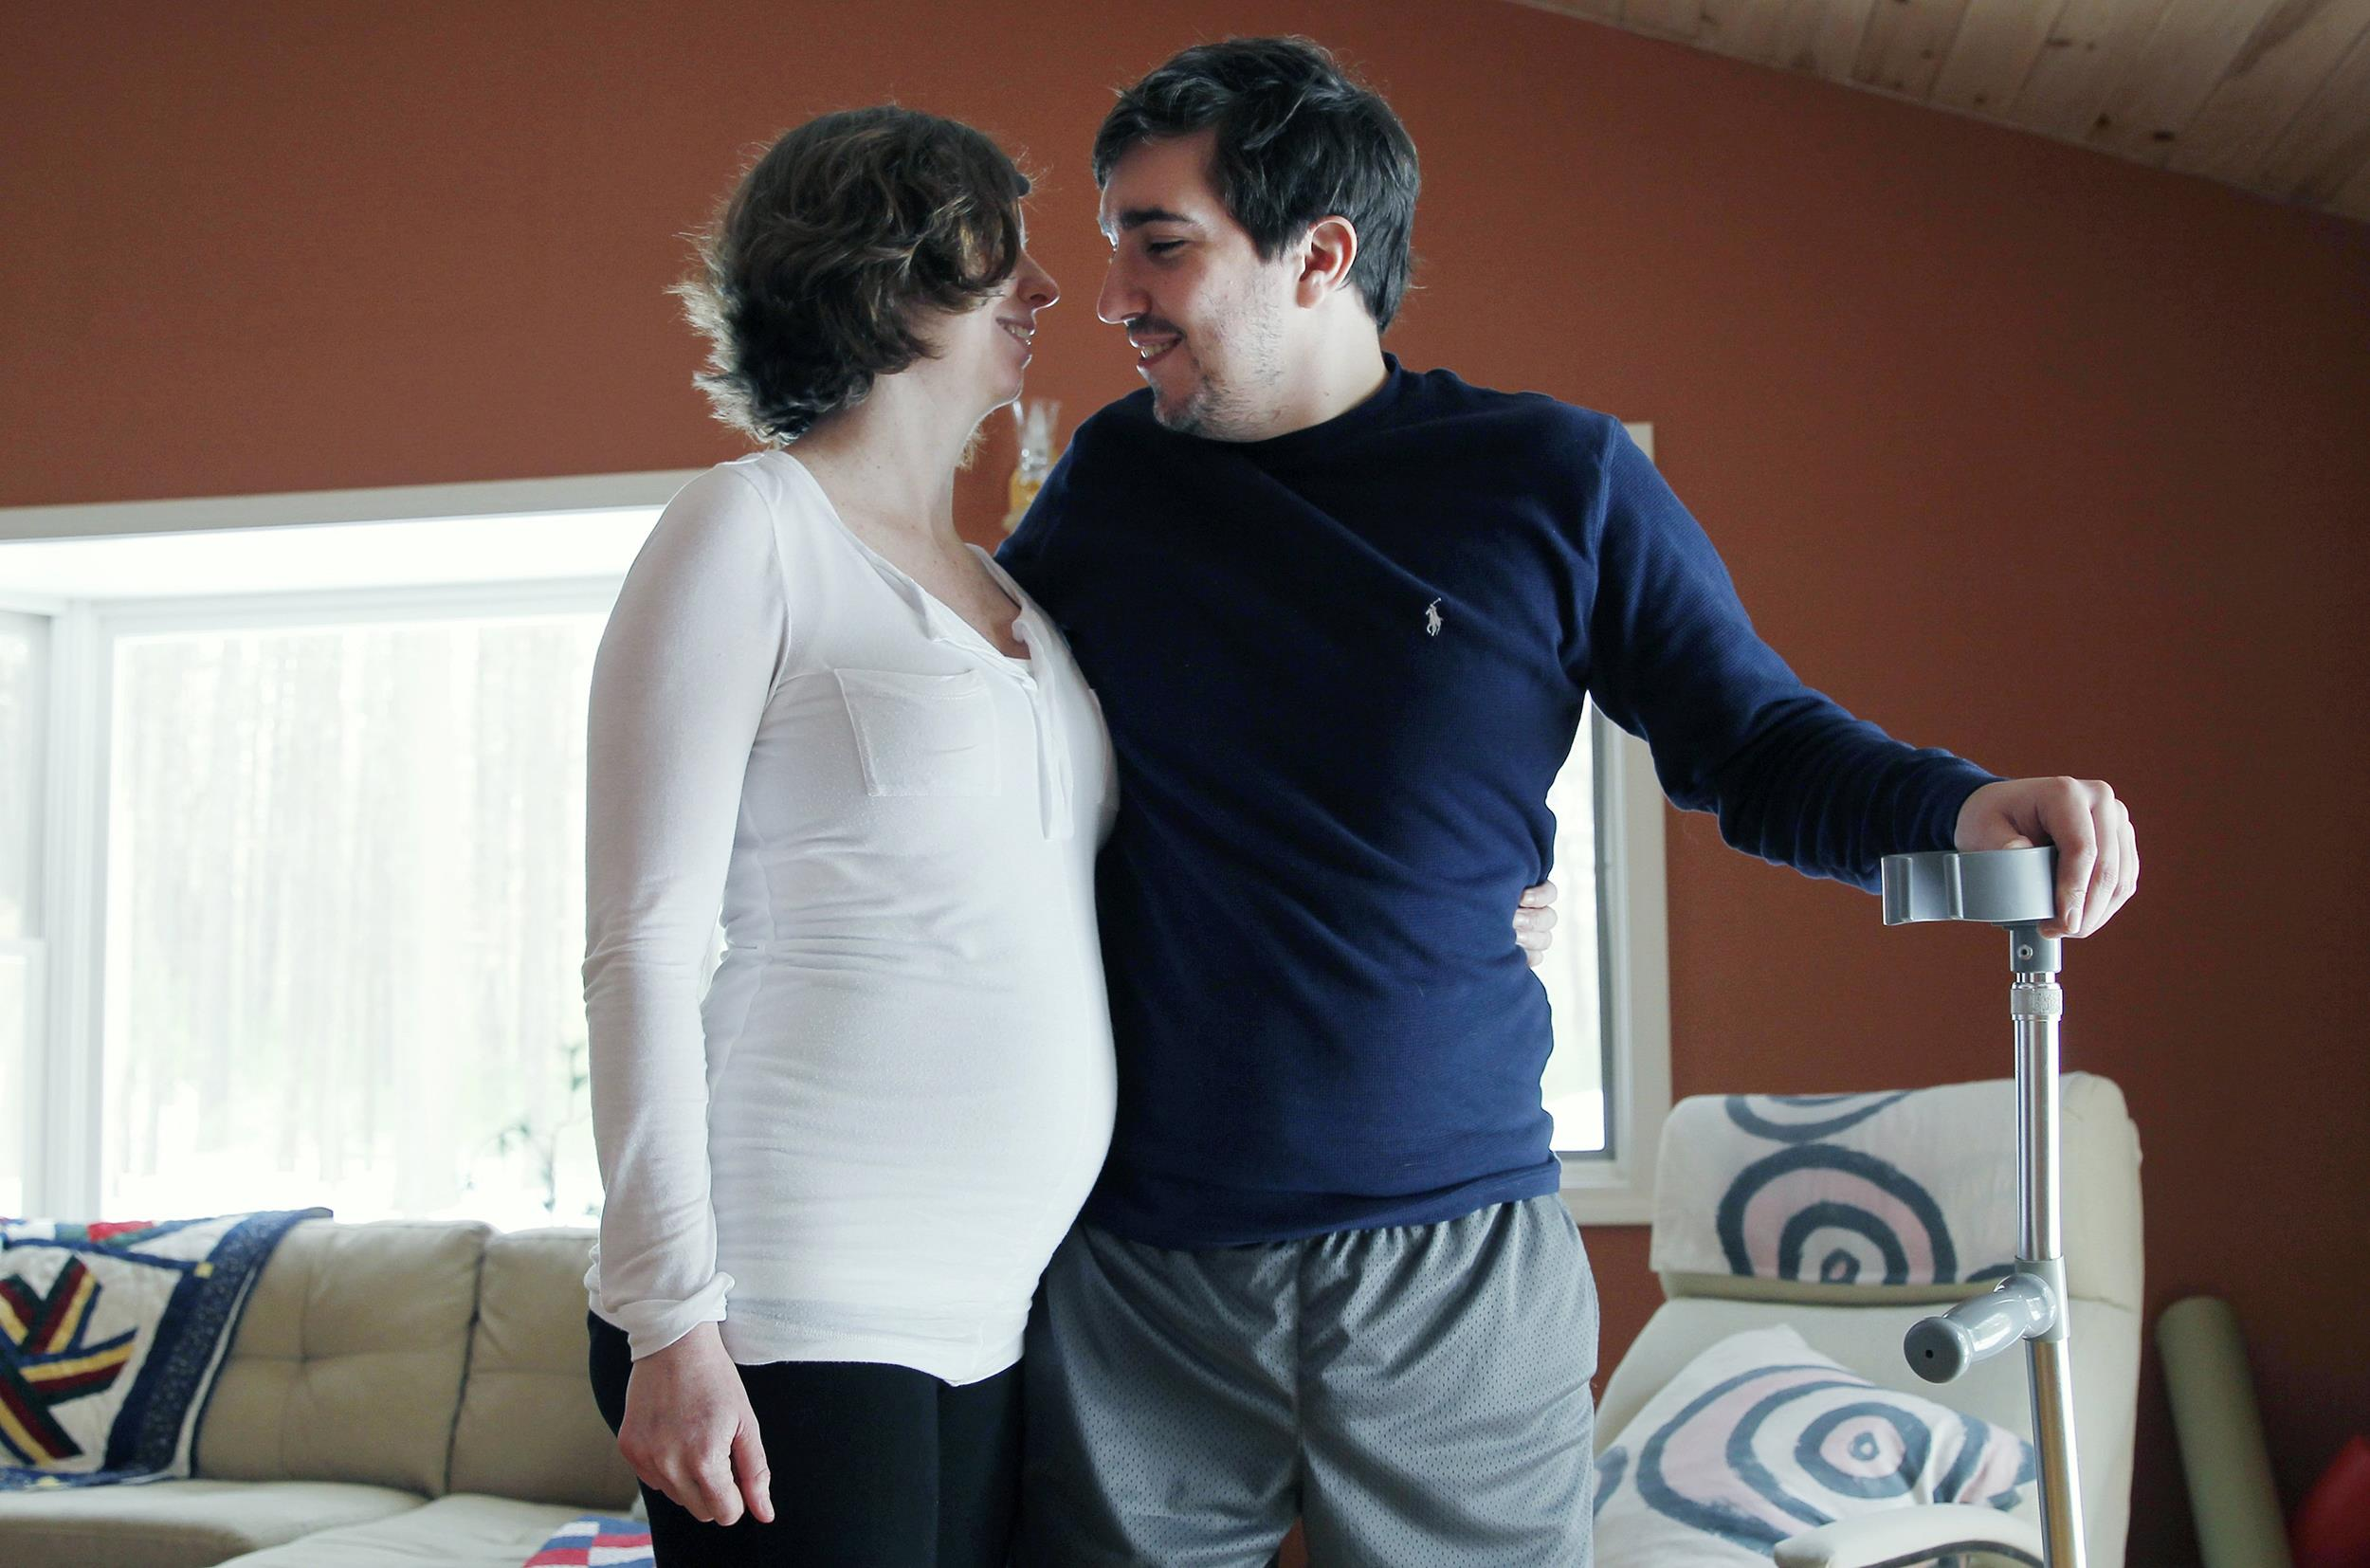 Image: Jeff Bauman, who lost both legs in the Boston Marathon bombings with his expectant then-fiance Erin Hurley